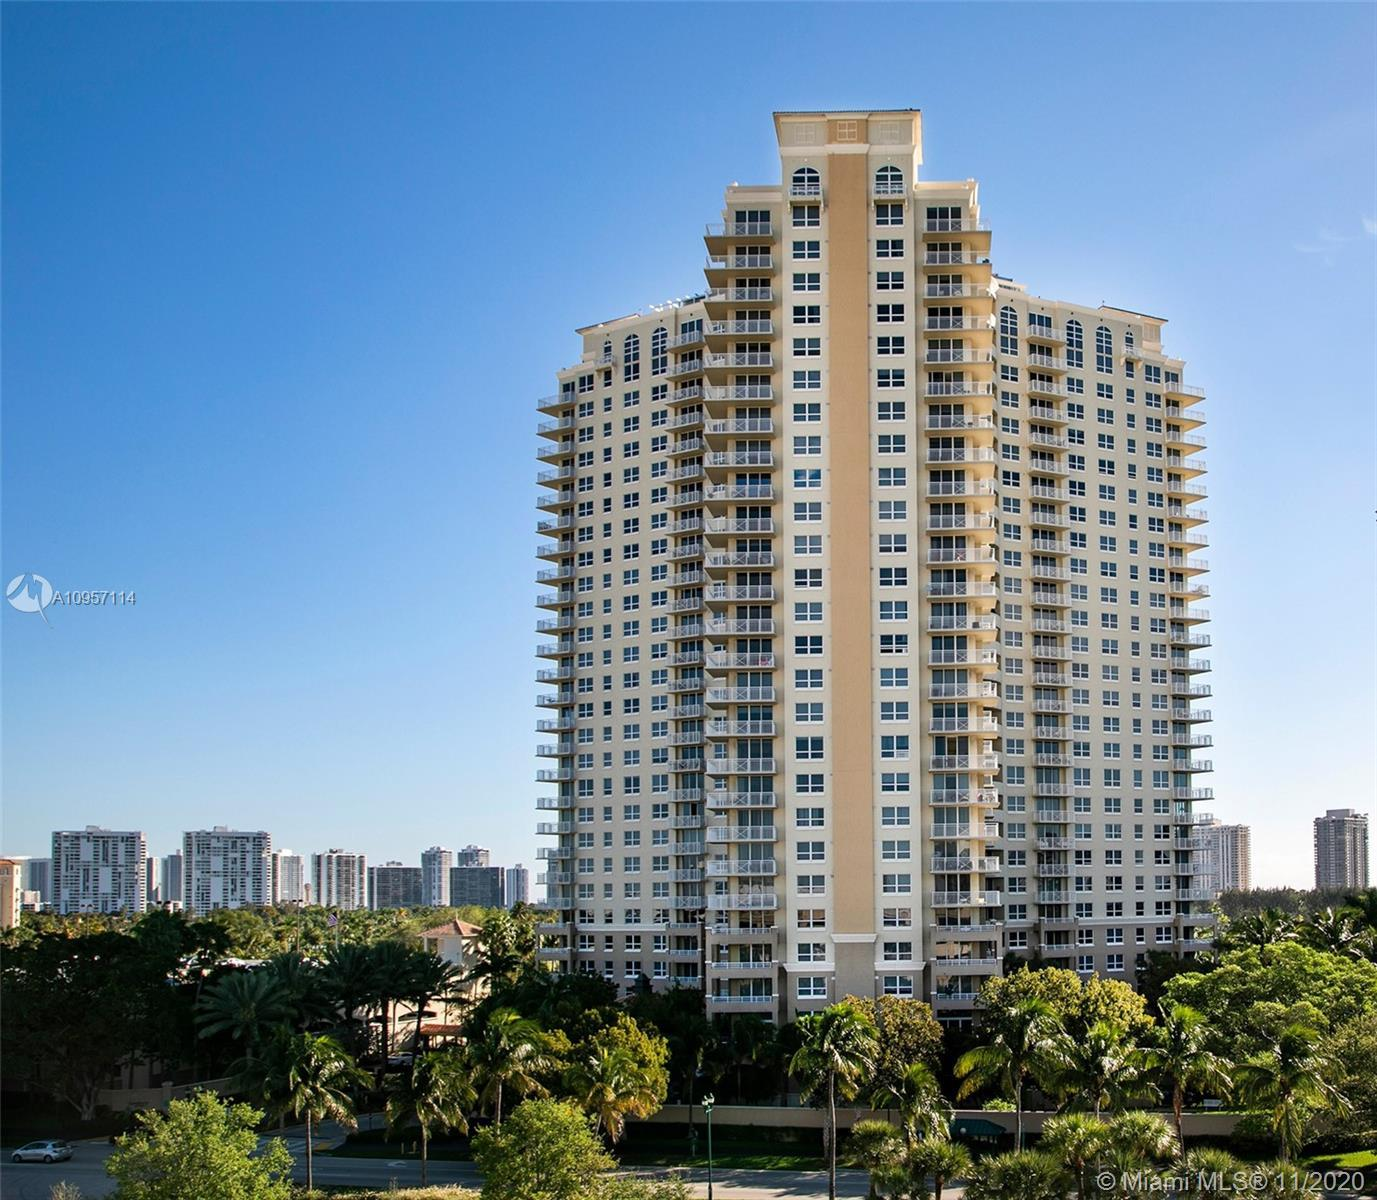 LOCATION!...BUILDING SITS ON TURNBERRY ISLES GOLF COURSE, VERY WELL MAINTAINED BLDG W/TONS OF AMENIT